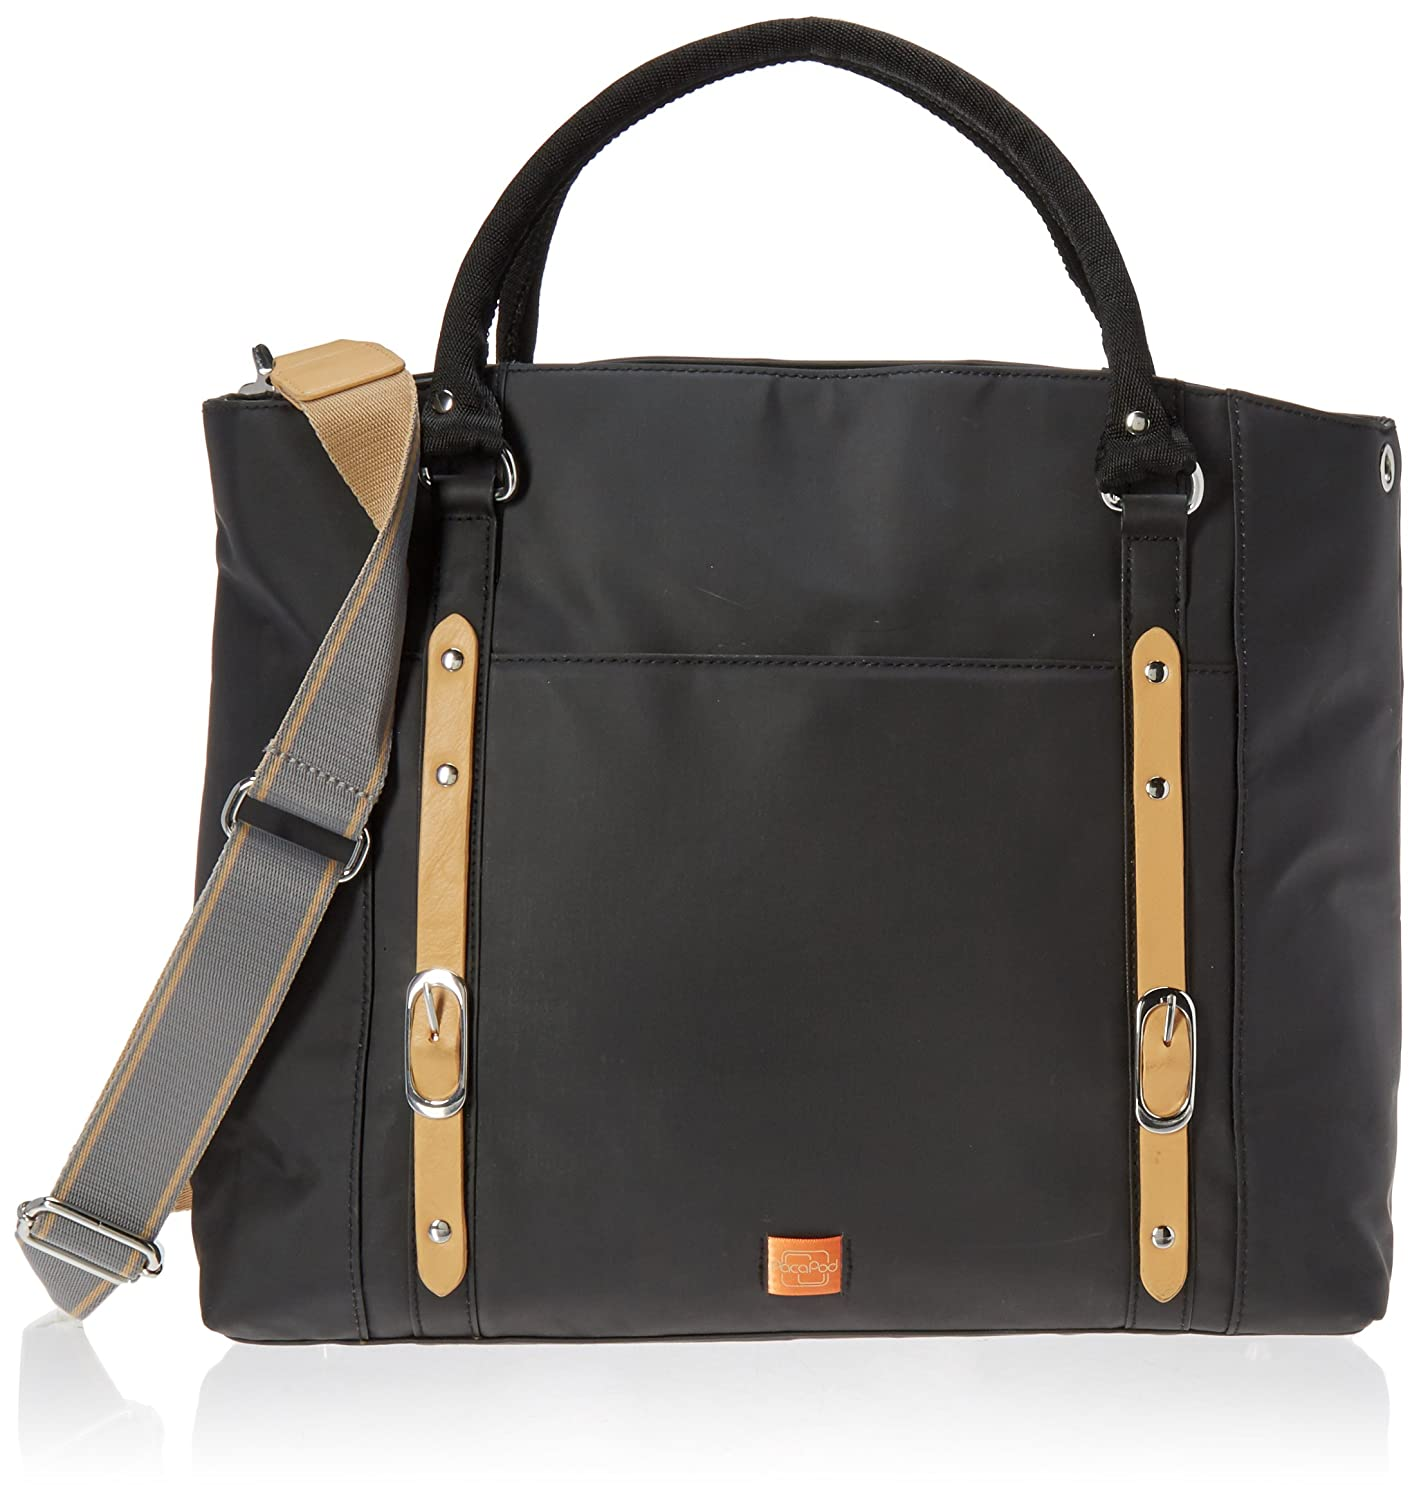 e651e51876d4b PacaPod Mirano Black Designer Baby Changing Bag - Luxury Black Tote 3 in 1  Organising System: Amazon.co.uk: Baby